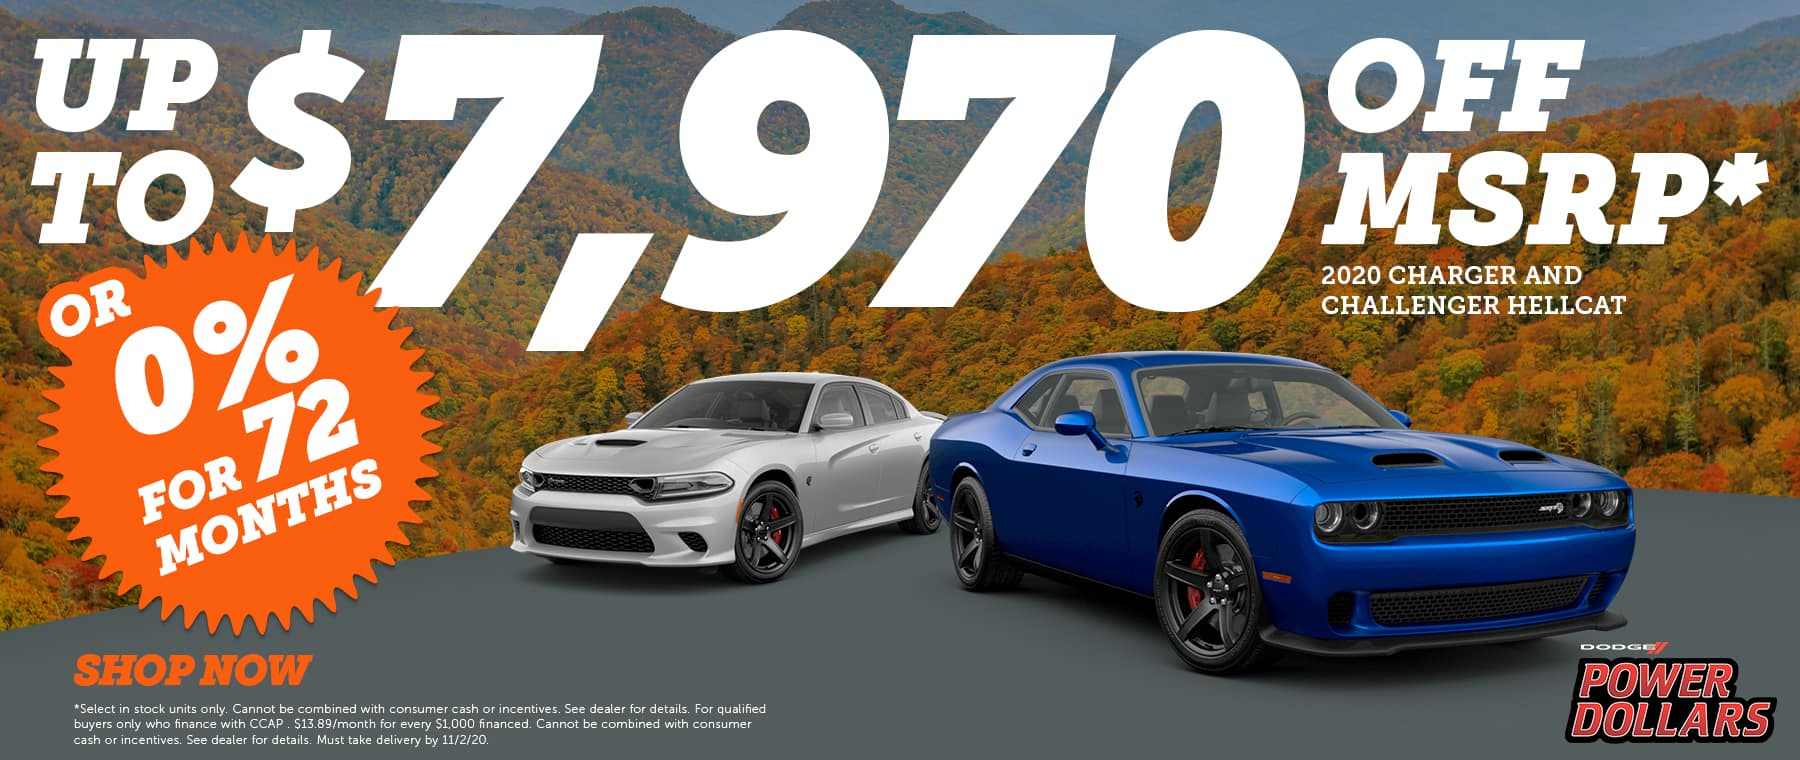 DRFCary_Oct20_CW_1800x760(Dodge)